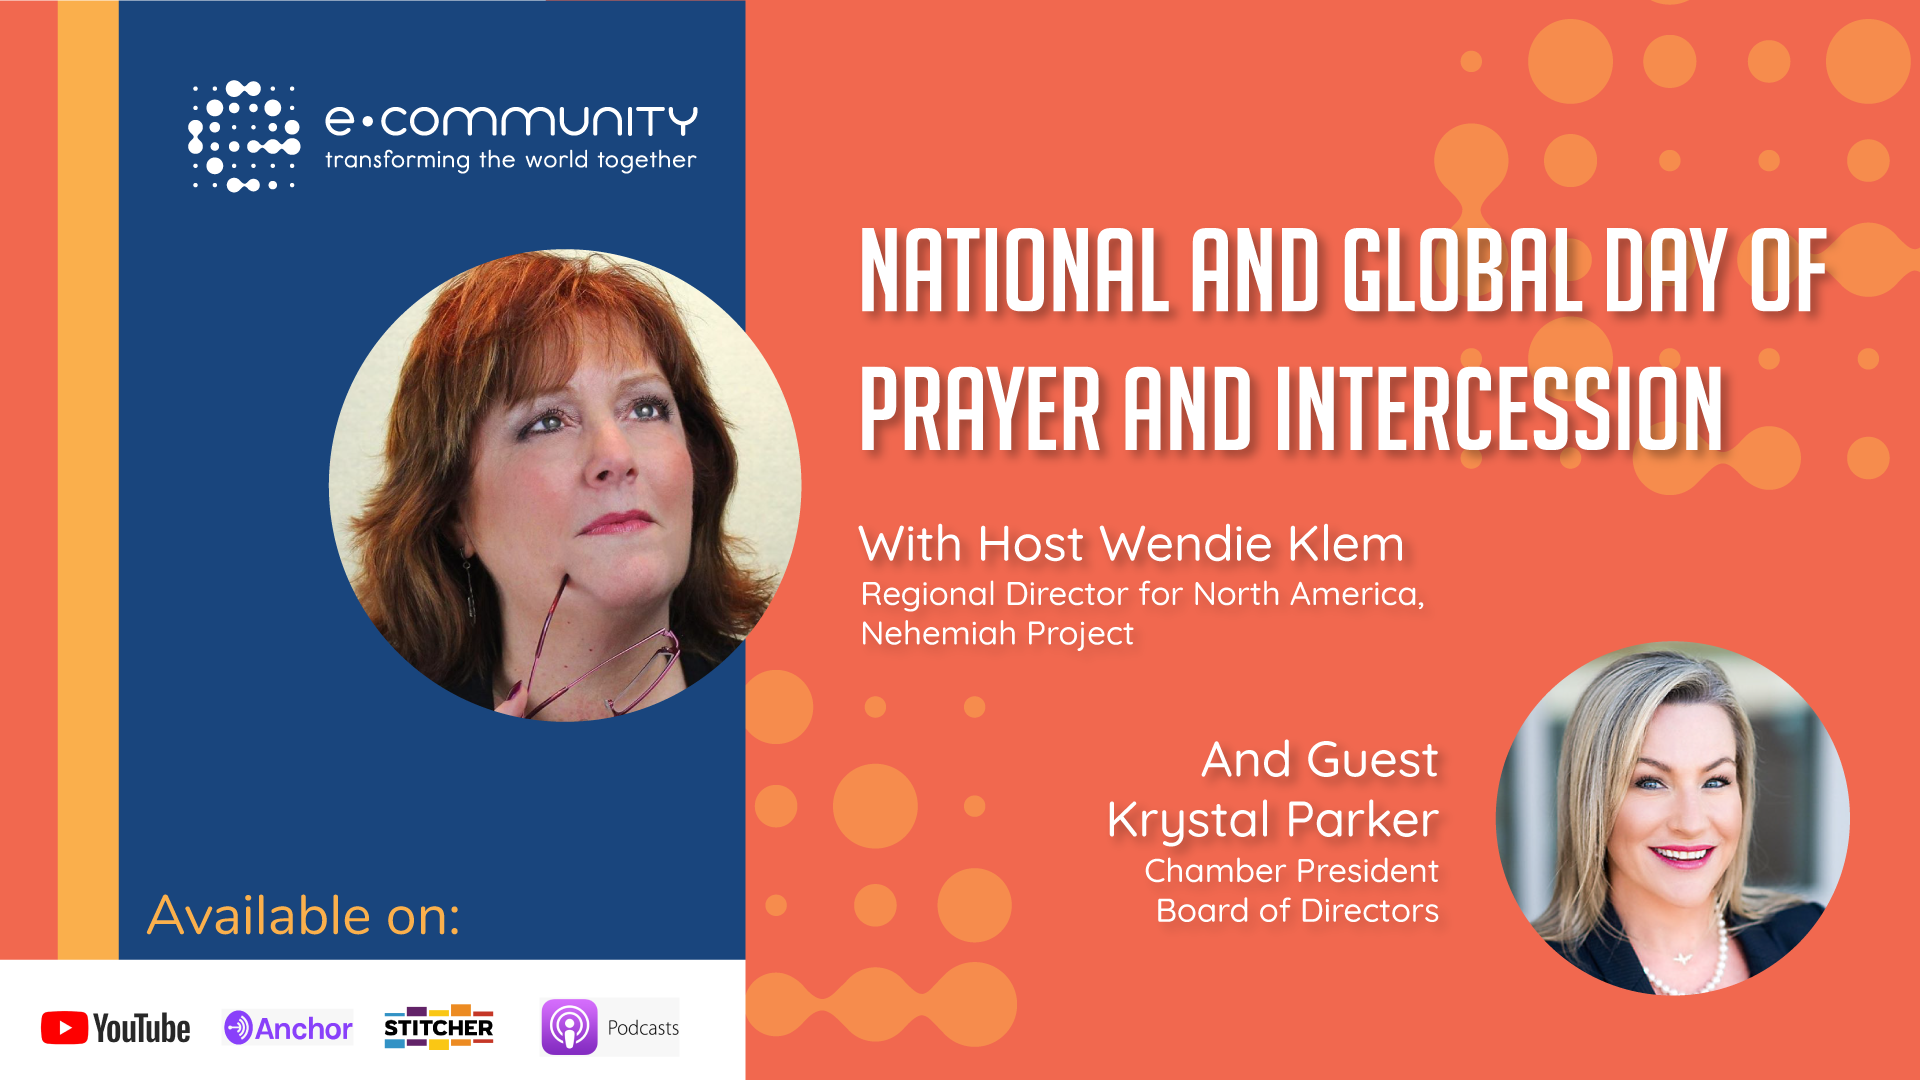 National and Global Day of Prayer and Intercession